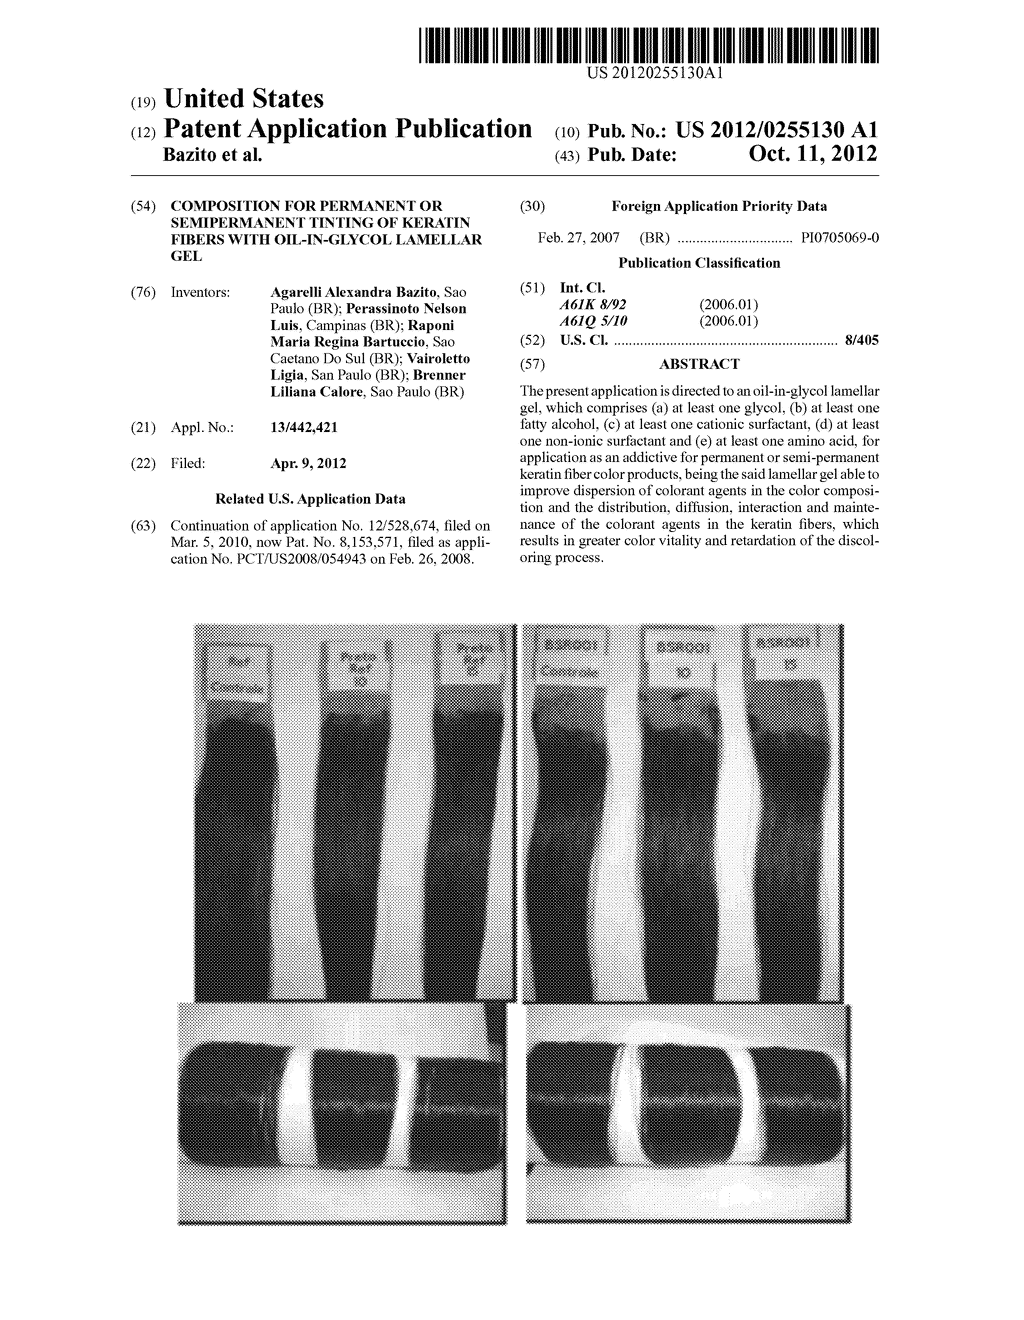 COMPOSITION FOR PERMANENT OR SEMIPERMANENT TINTING OF KERATIN FIBERS WITH     OIL-IN-GLYCOL LAMELLAR GEL - diagram, schematic, and image 01